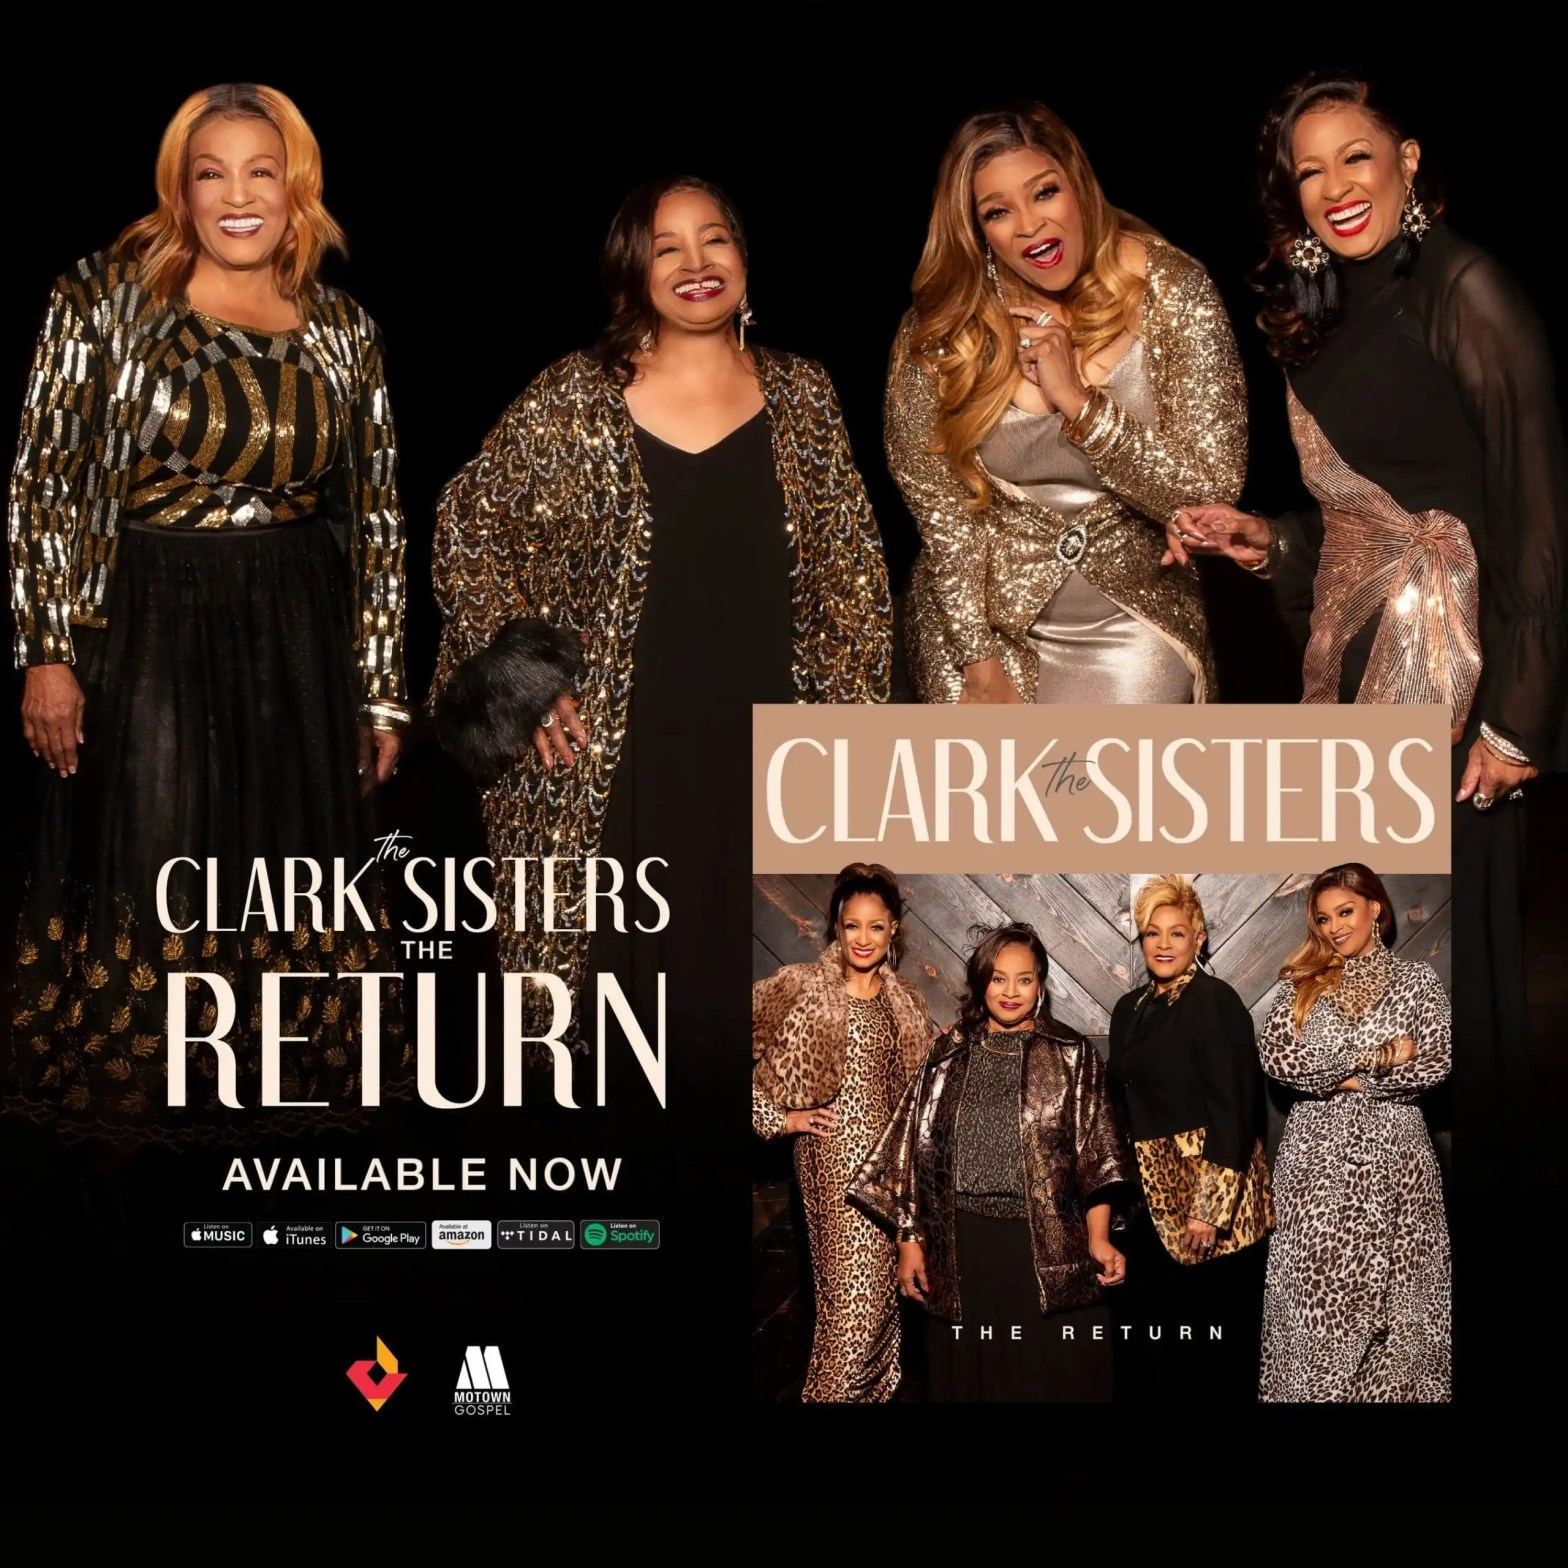 """The Clark Sisters' Highly Anticipated New Album, """"The Return"""" Available Now"""